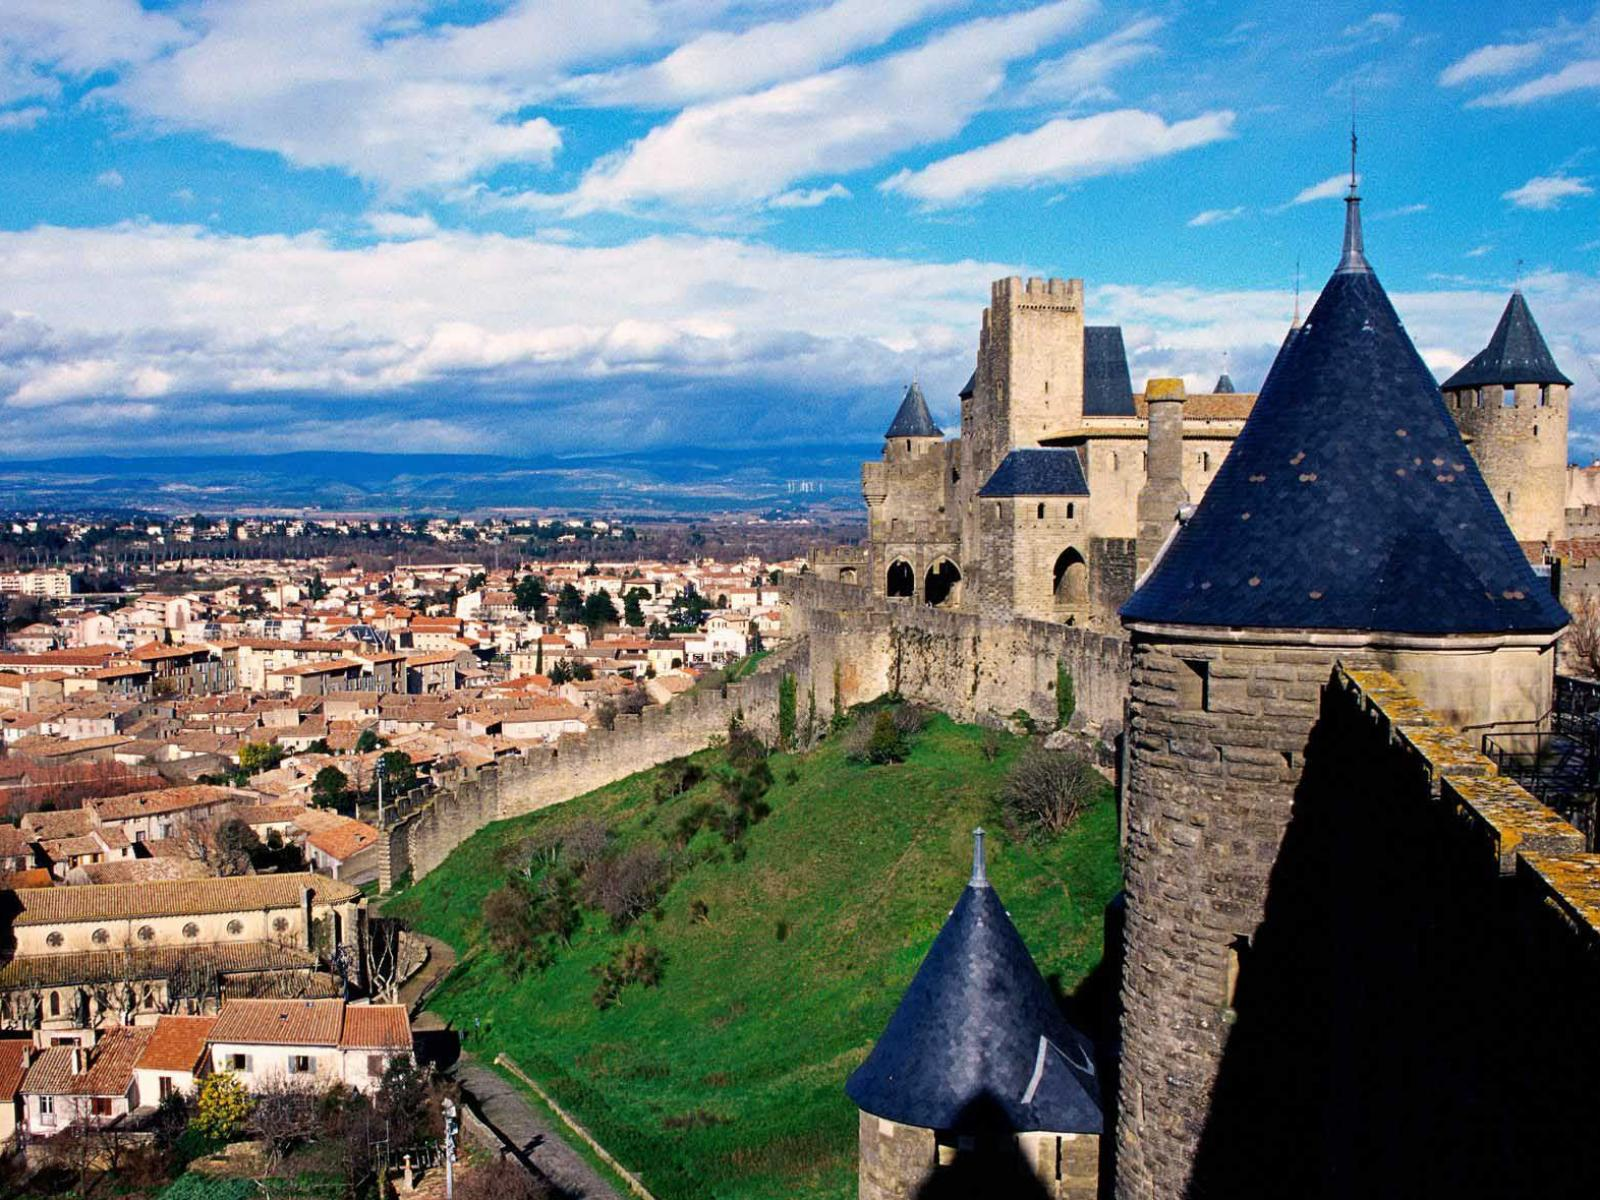 ���� Comtal Castle,Carcassonne,France 1600x1200